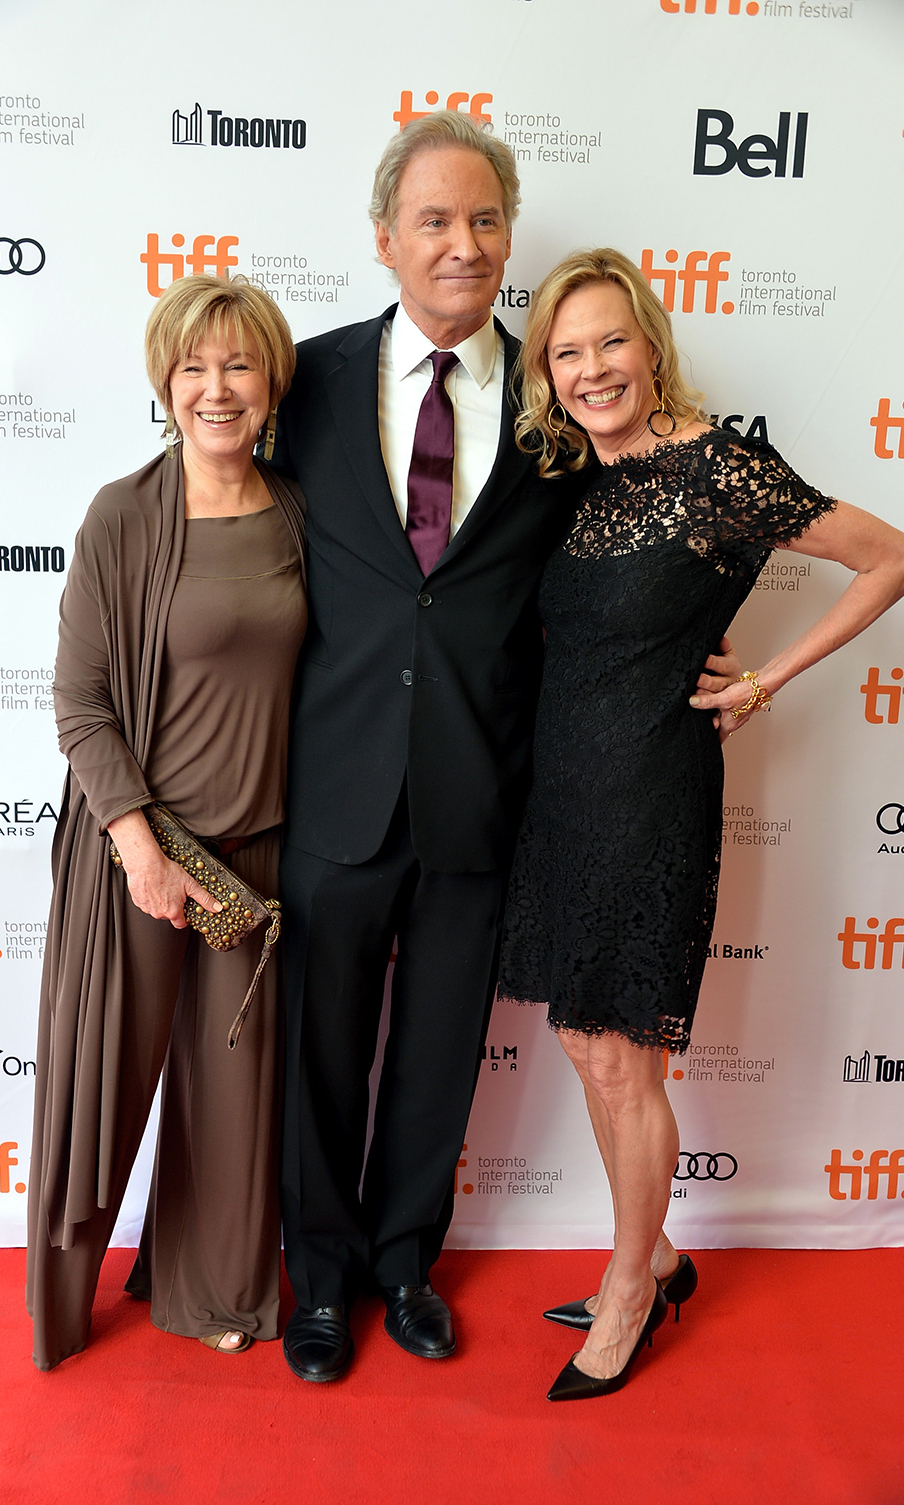 Actors Mary Kay Place, Kevin Kline and JoBeth Williams at the The Big Chill premiere at the 2013 Toronto International Film Festival.